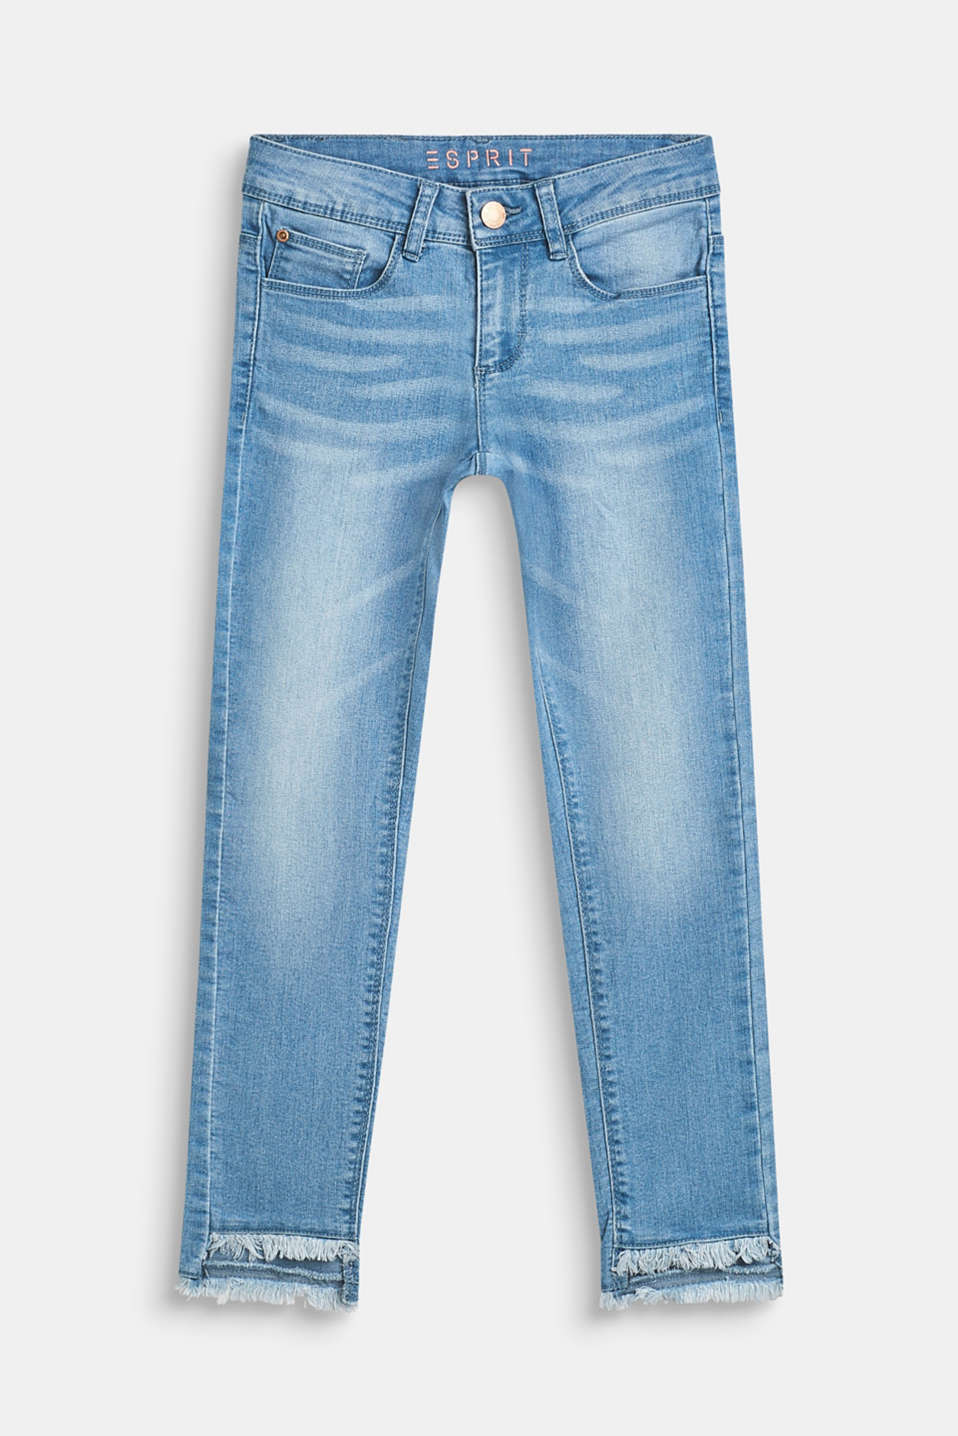 Esprit - Ultra stretchy jeans with a vintage garment wash